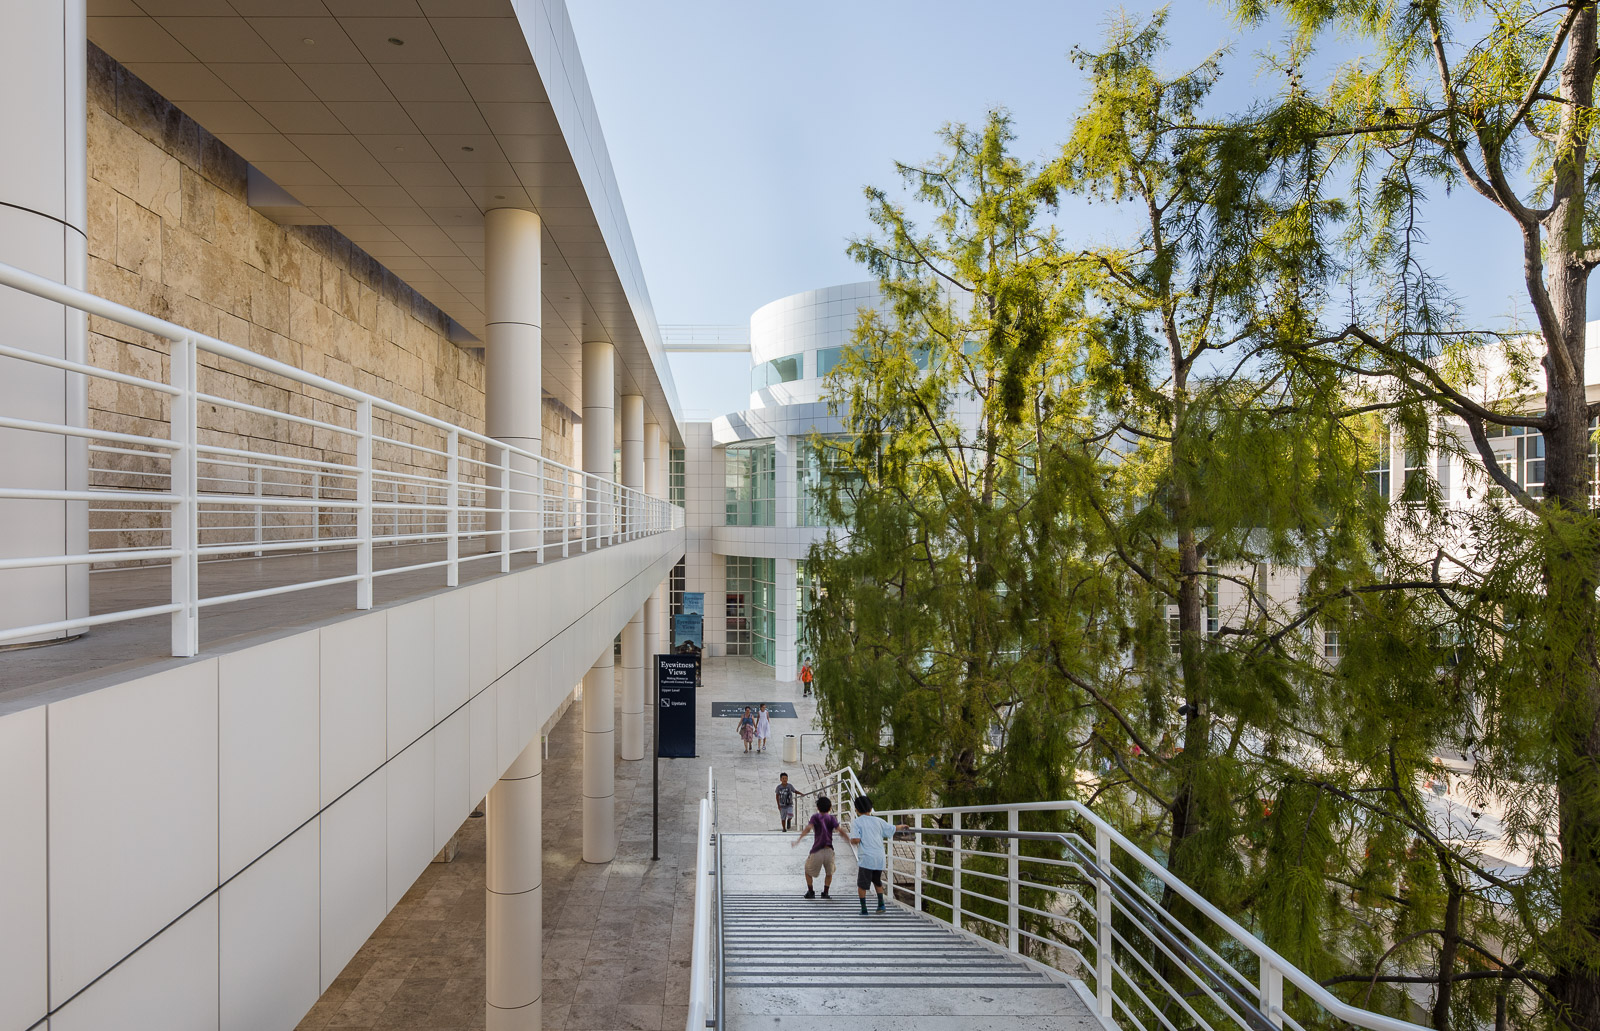 Exterior architecture of the Getty Center museum in Los Angeles